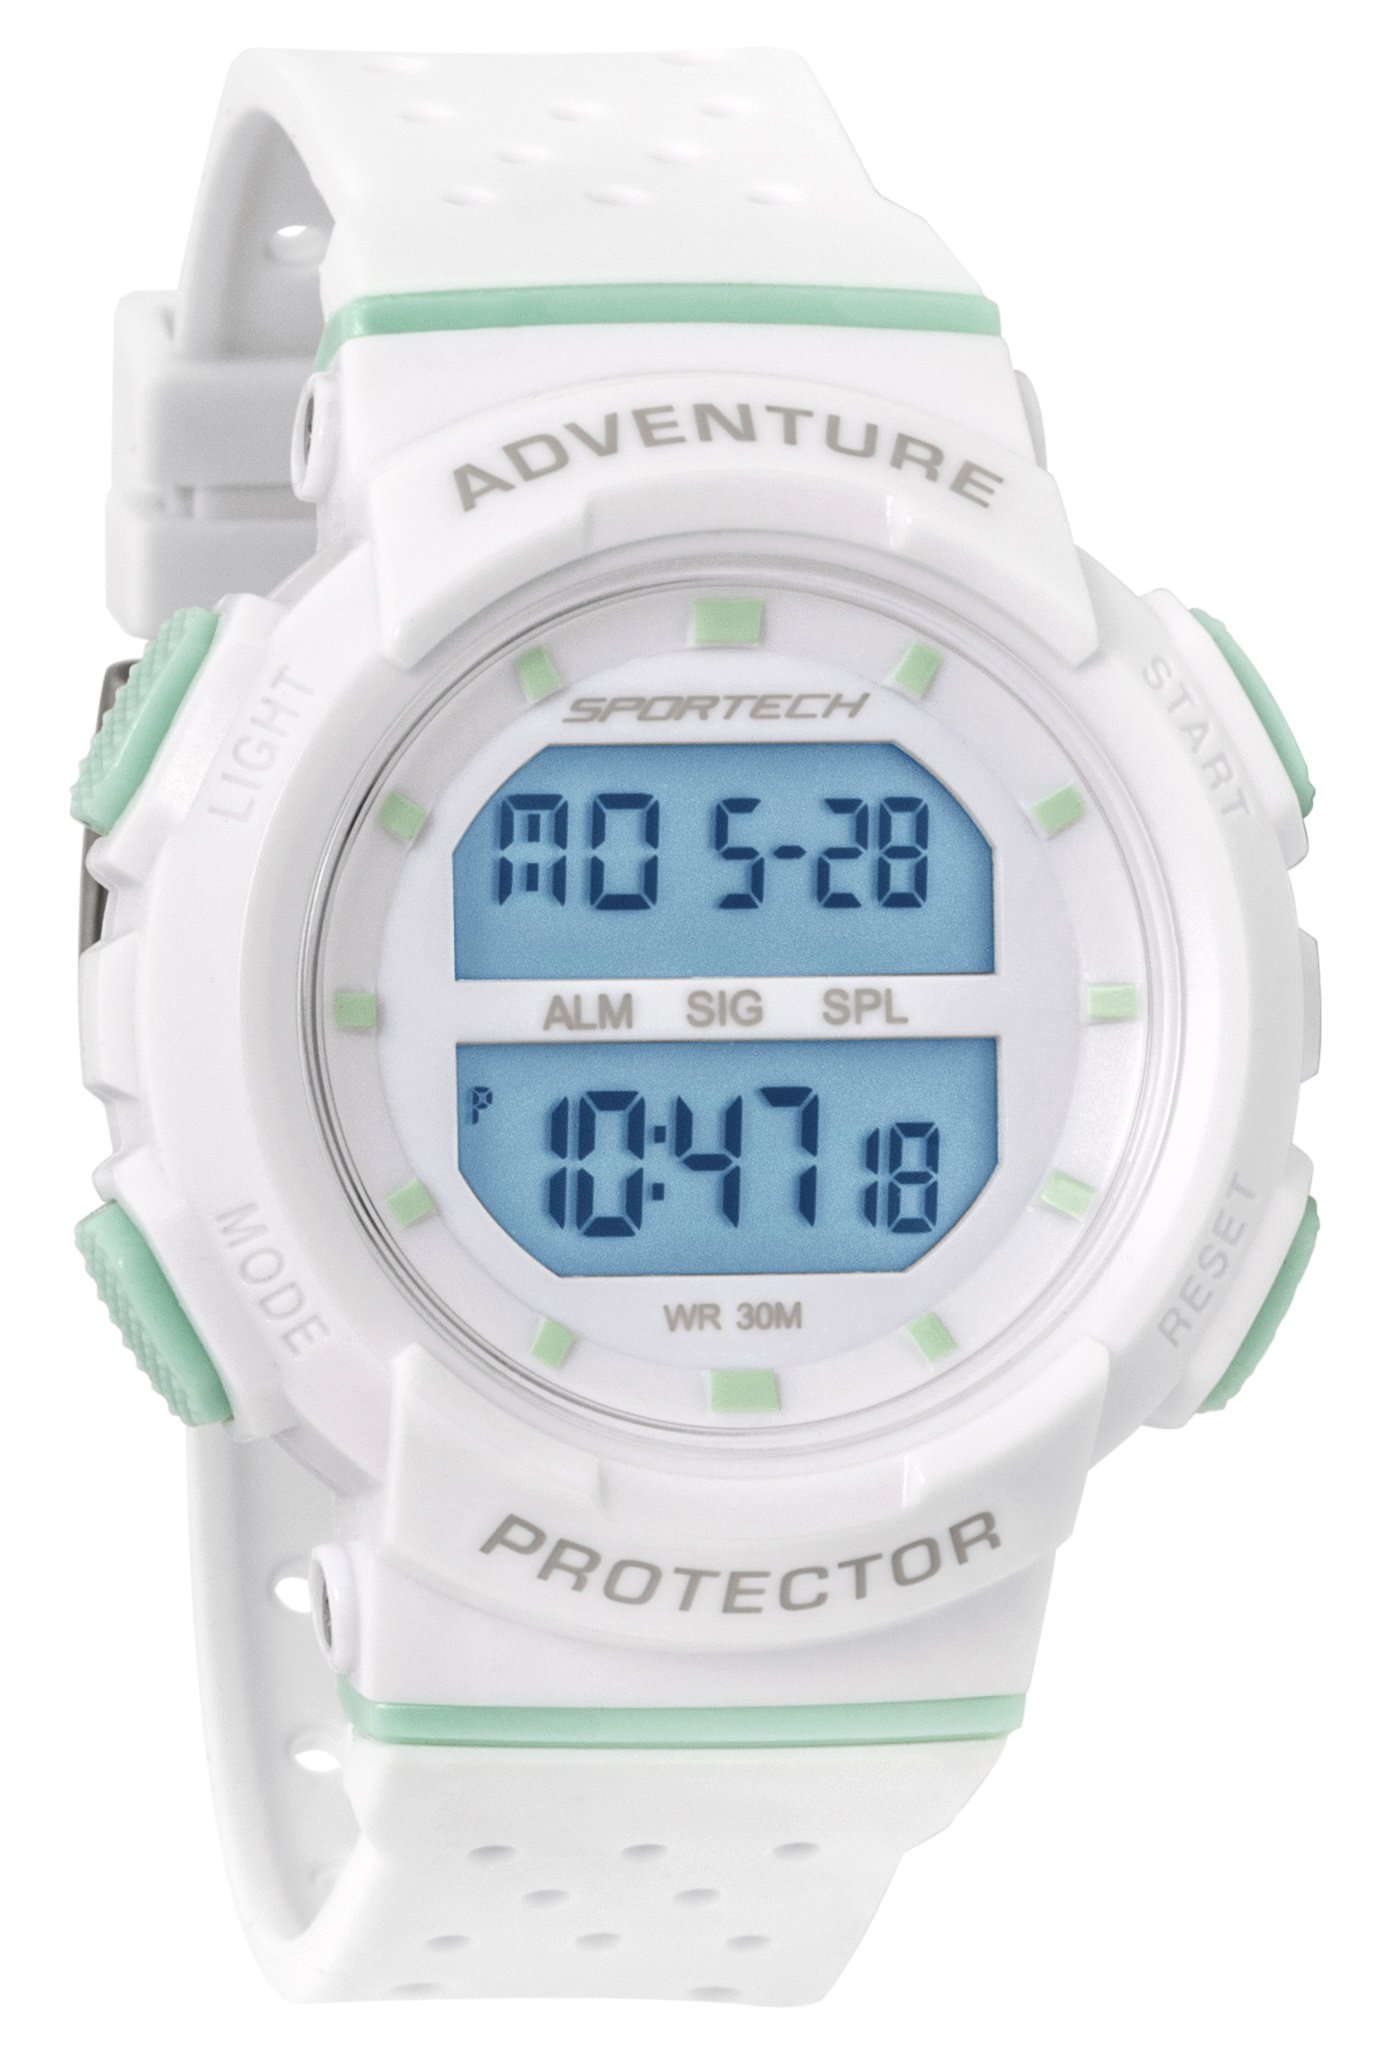 SPORTECH Women's/Girls' | White & Mint Digital Water-Resistant Sports Watch | SP12701 by Sportech